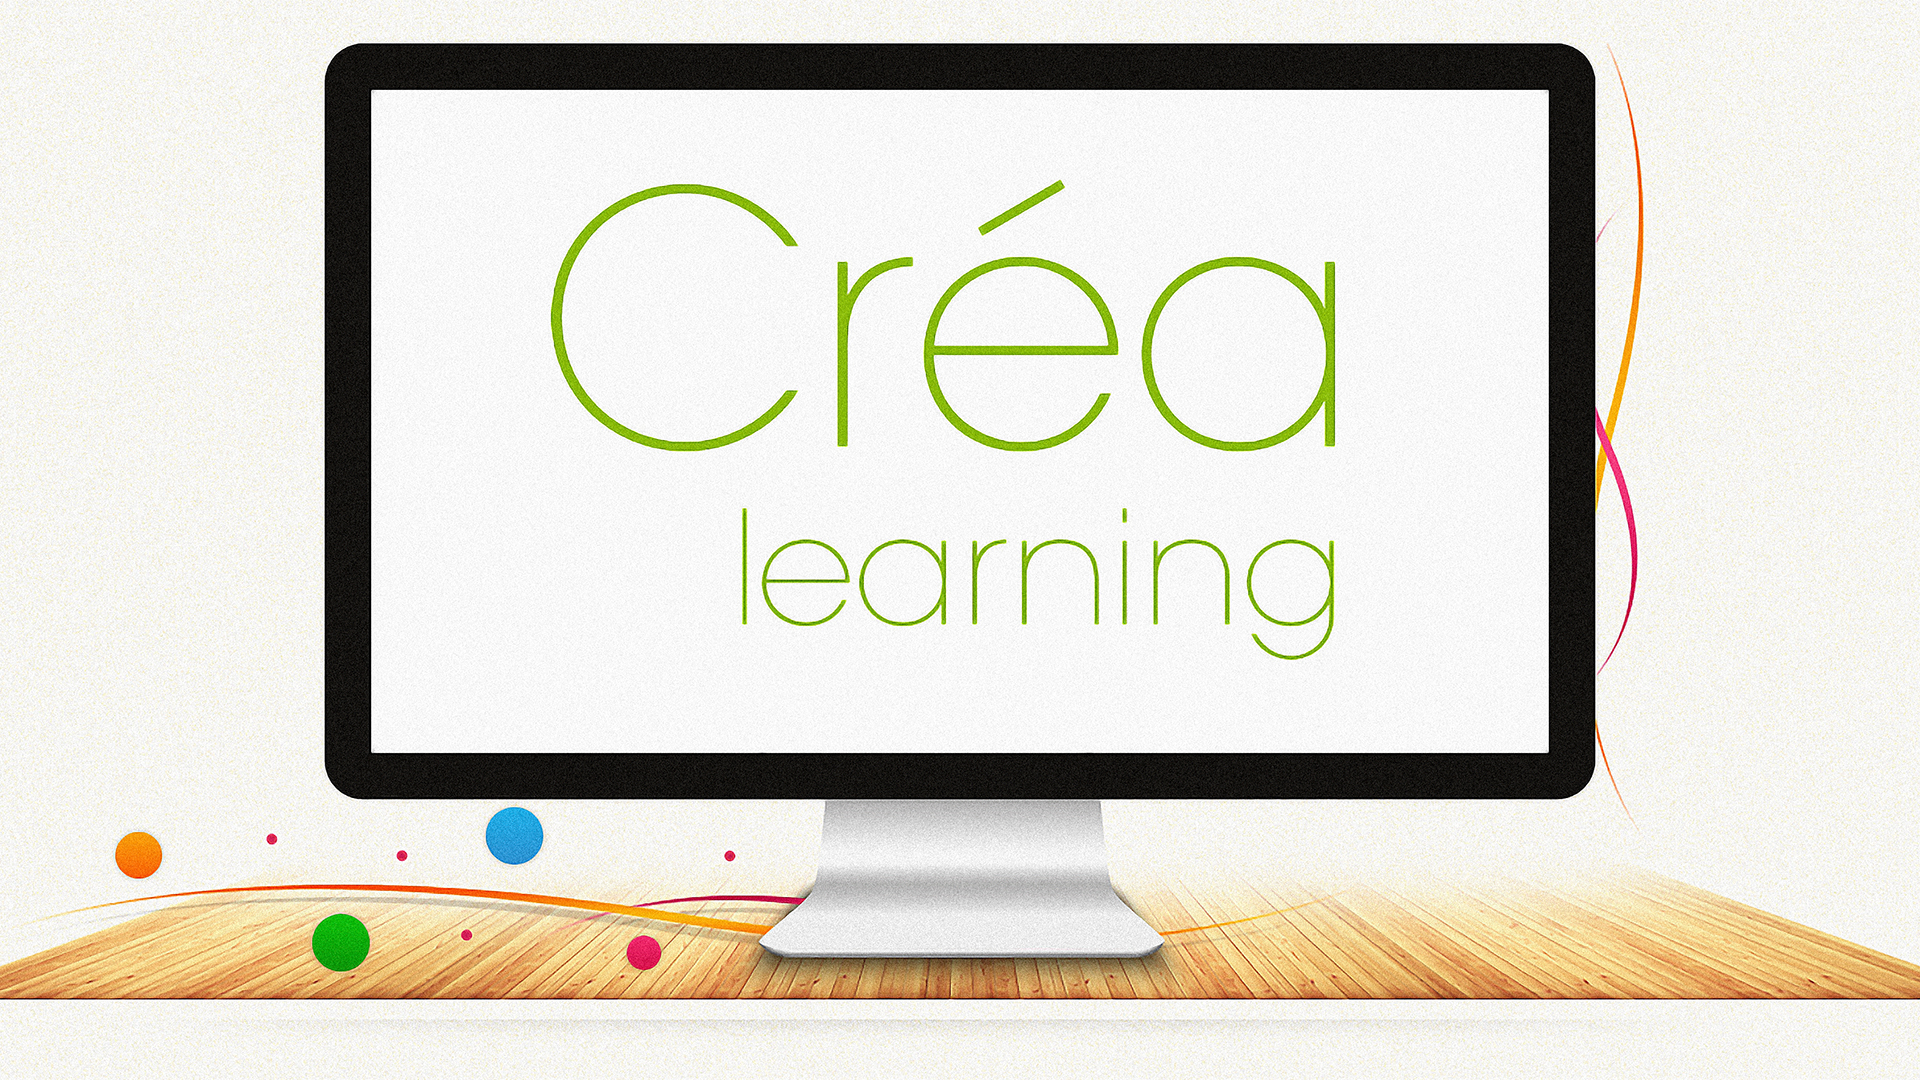 cr u00e9a learning - cr u00e9er des supports de formation en ligne